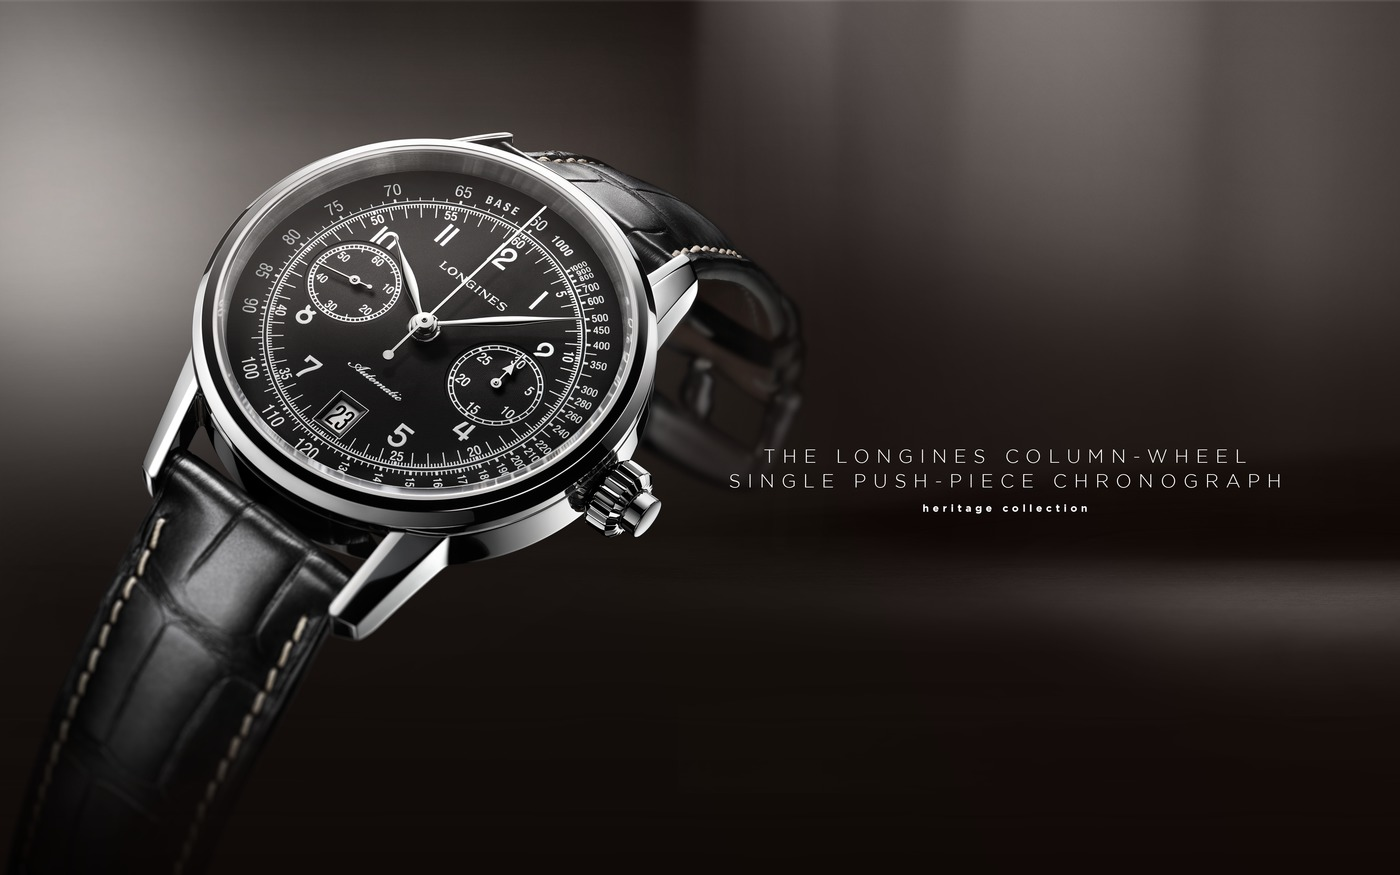 Longines The Longines Column-Wheel Single Push-Piece Chronograph  Watch 4